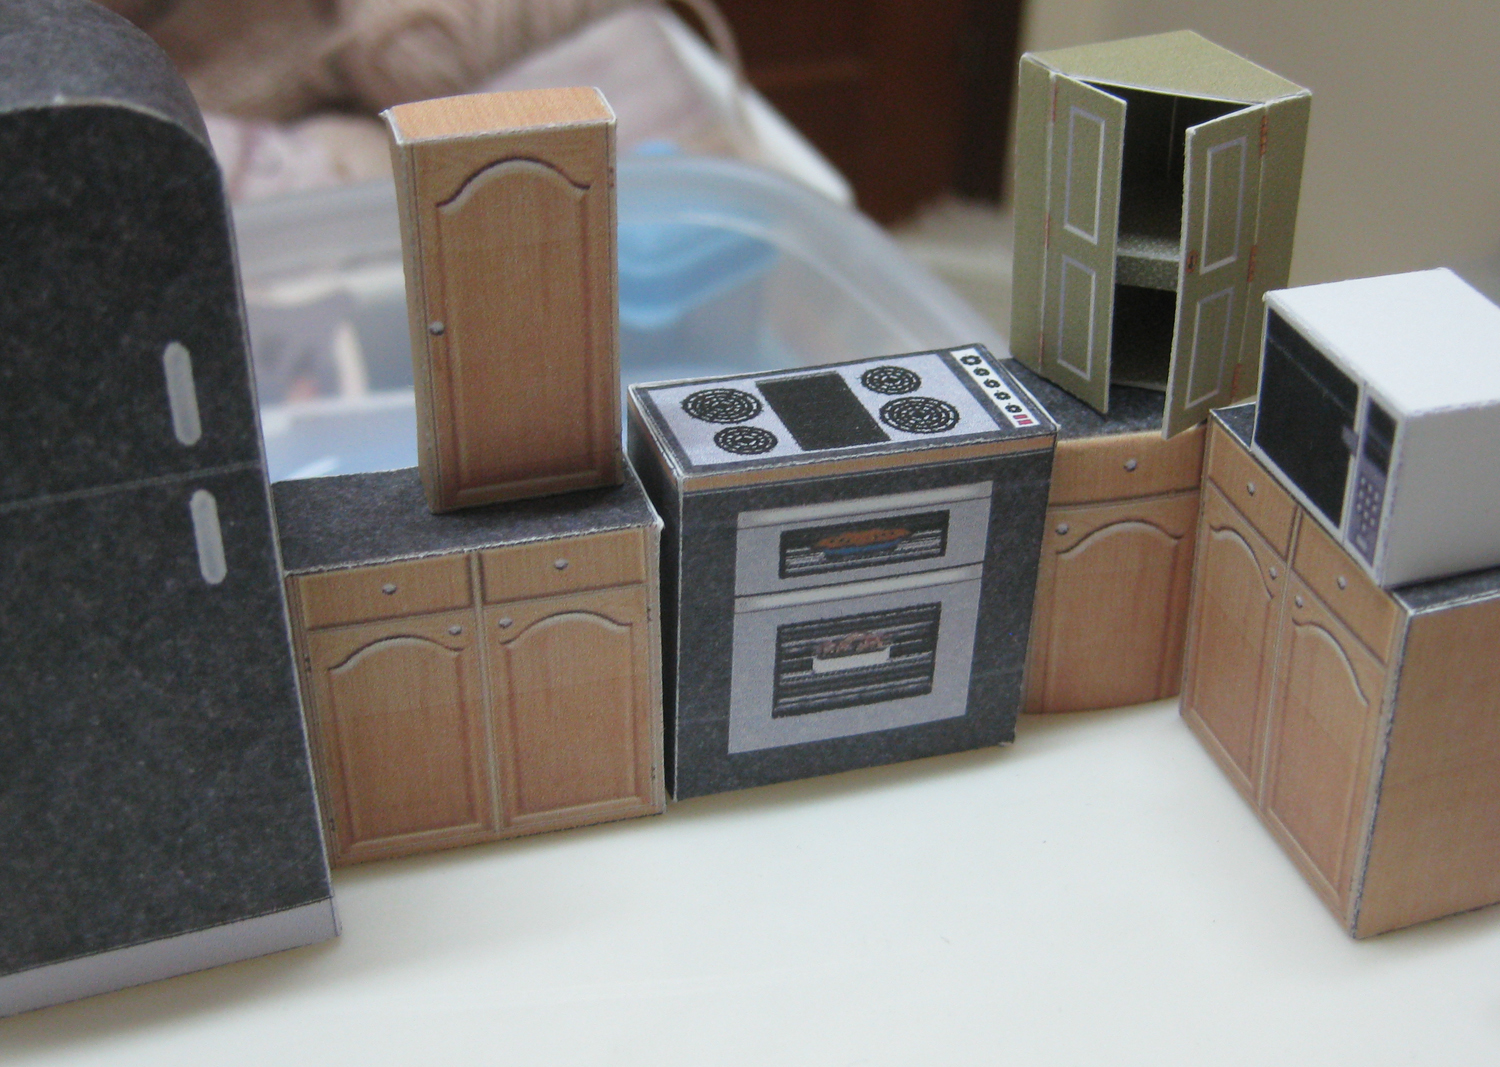 Kitchen Dollhouse Furniture Similiar Mini Paper Furniture Keywords